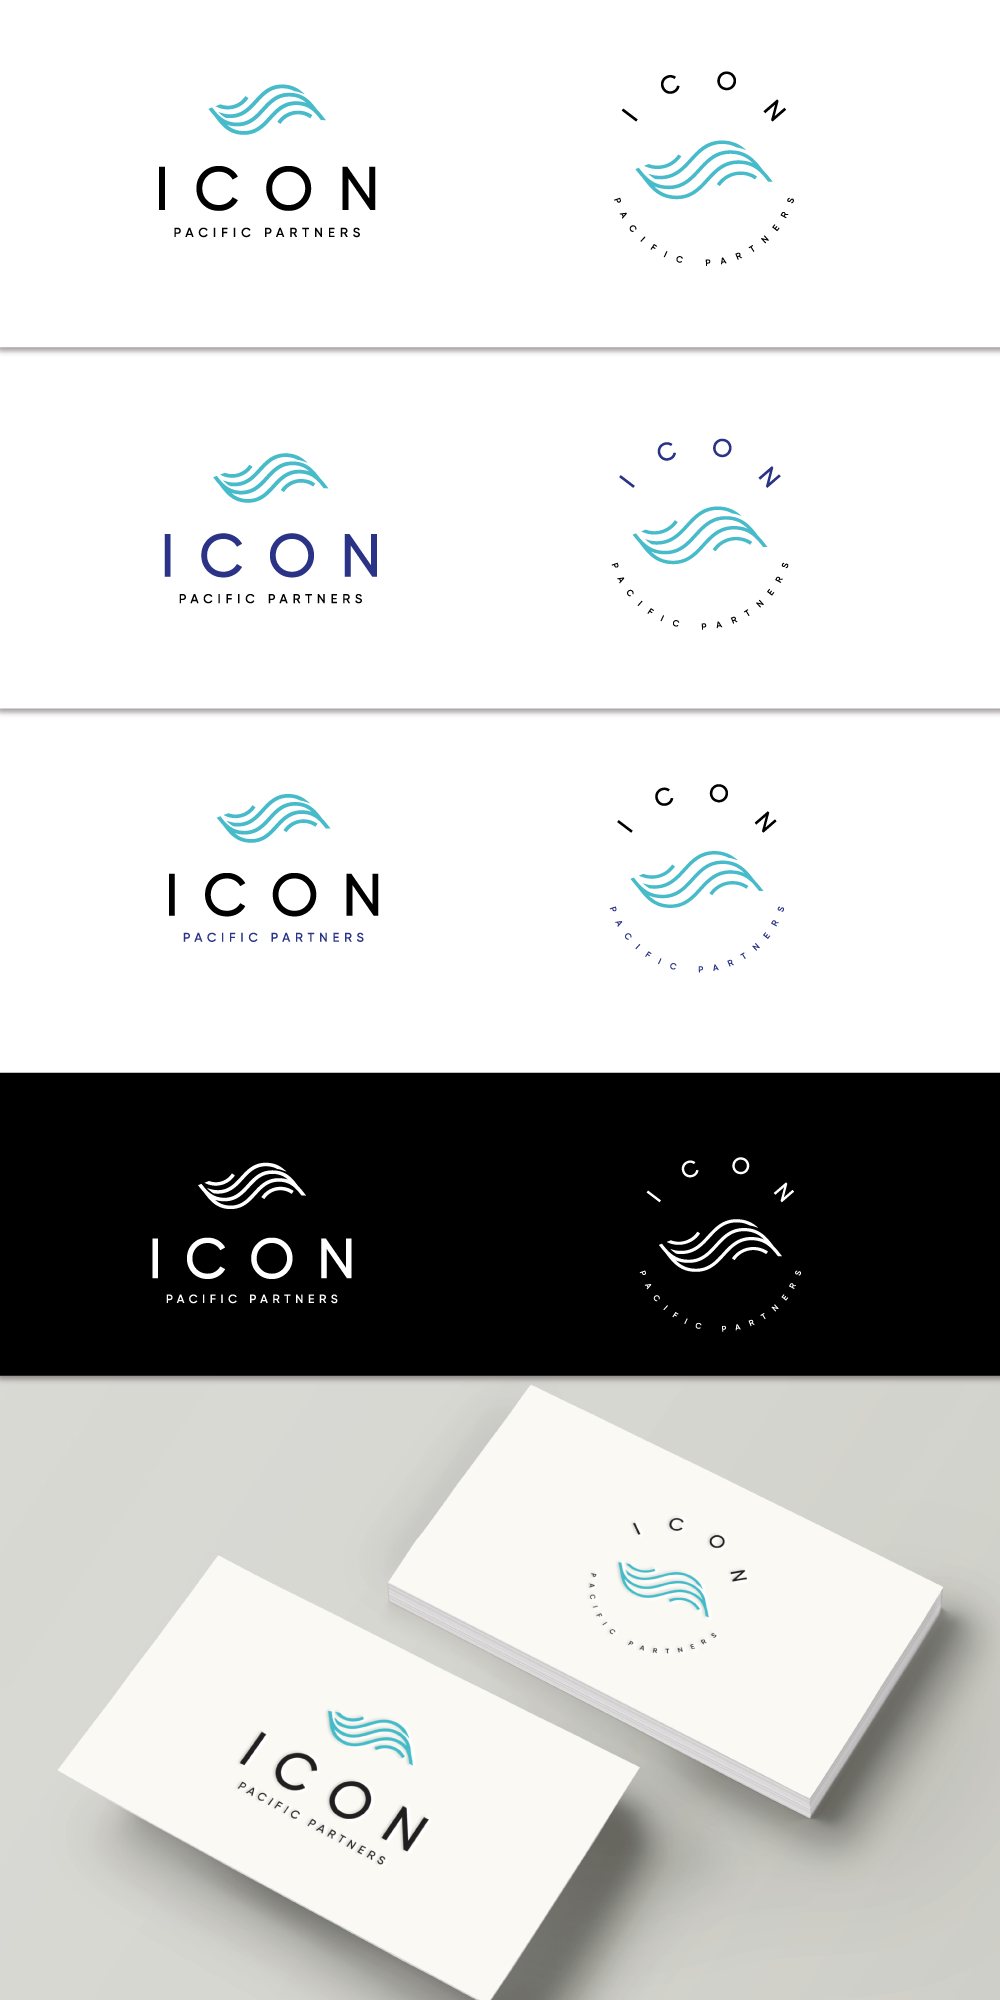 Create an iconic, abstract (creative), sophisticated, elegant logo for CA real estate investment company!